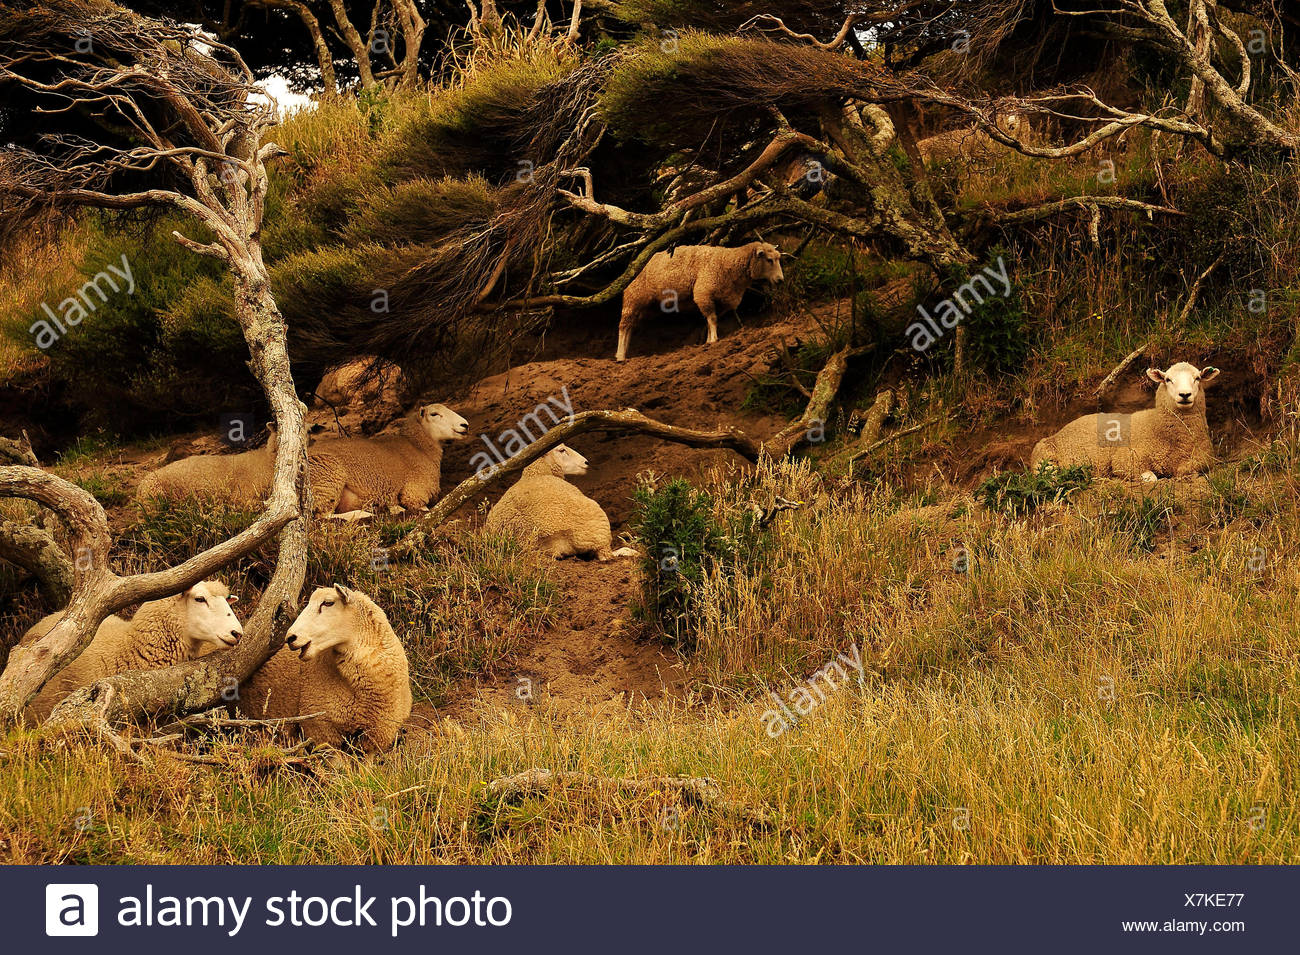 A group of sheep in the pastureland New Zealand is active with are lazy, gossip and digest occupied. - Stock Image